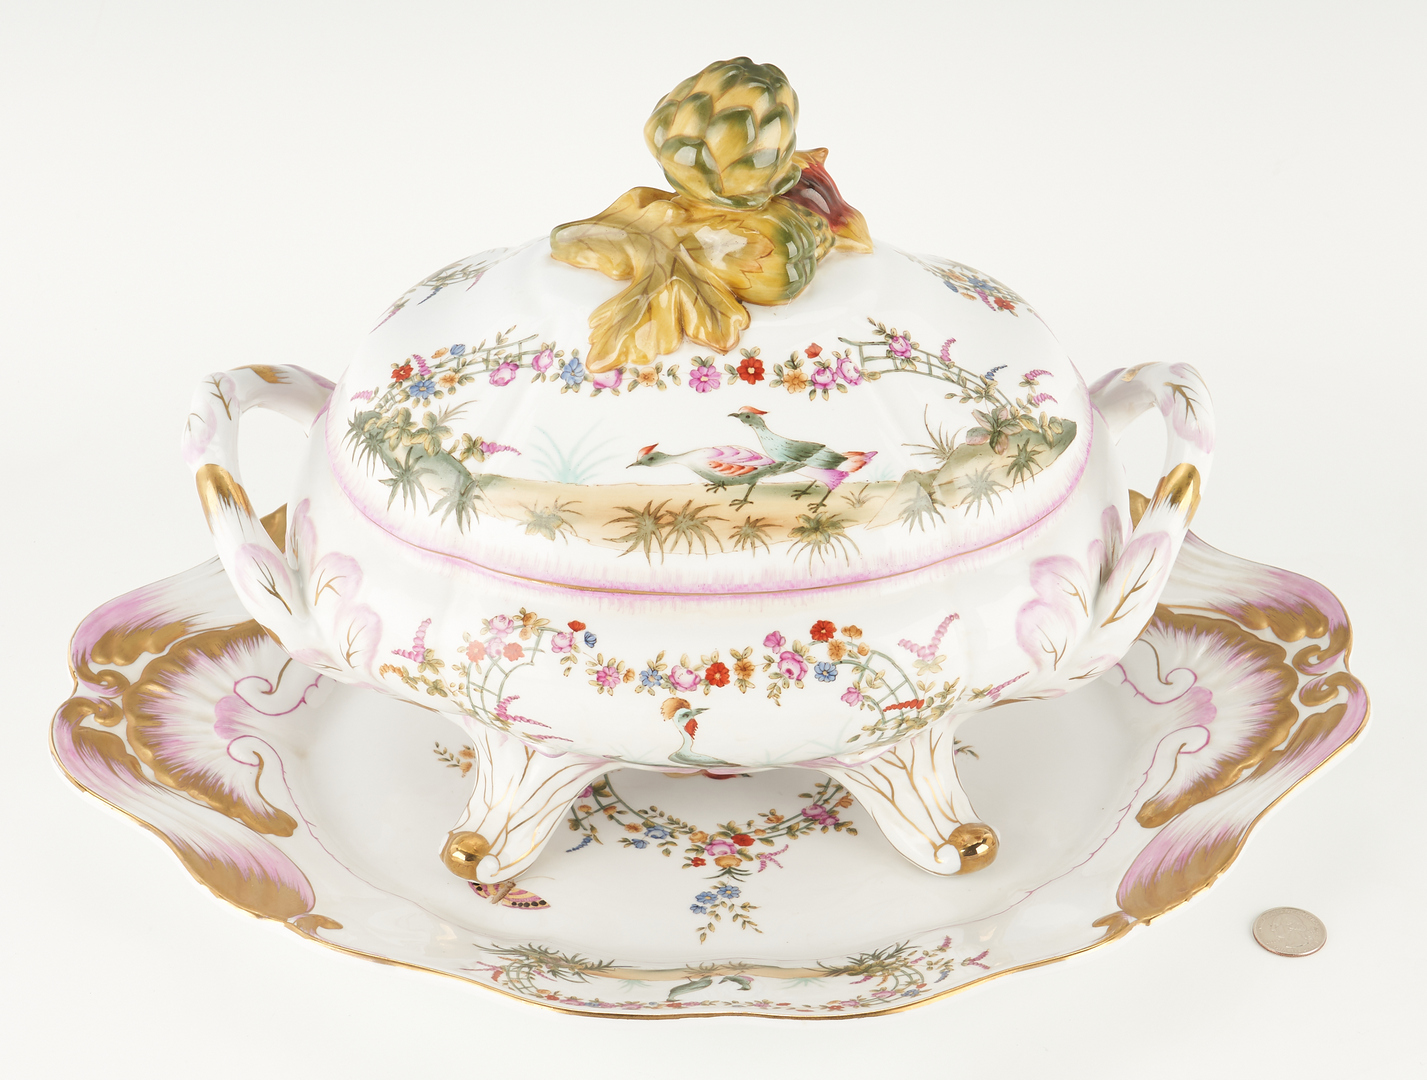 Lot 947: Sevres Style Porcelain Tureen & Underplate